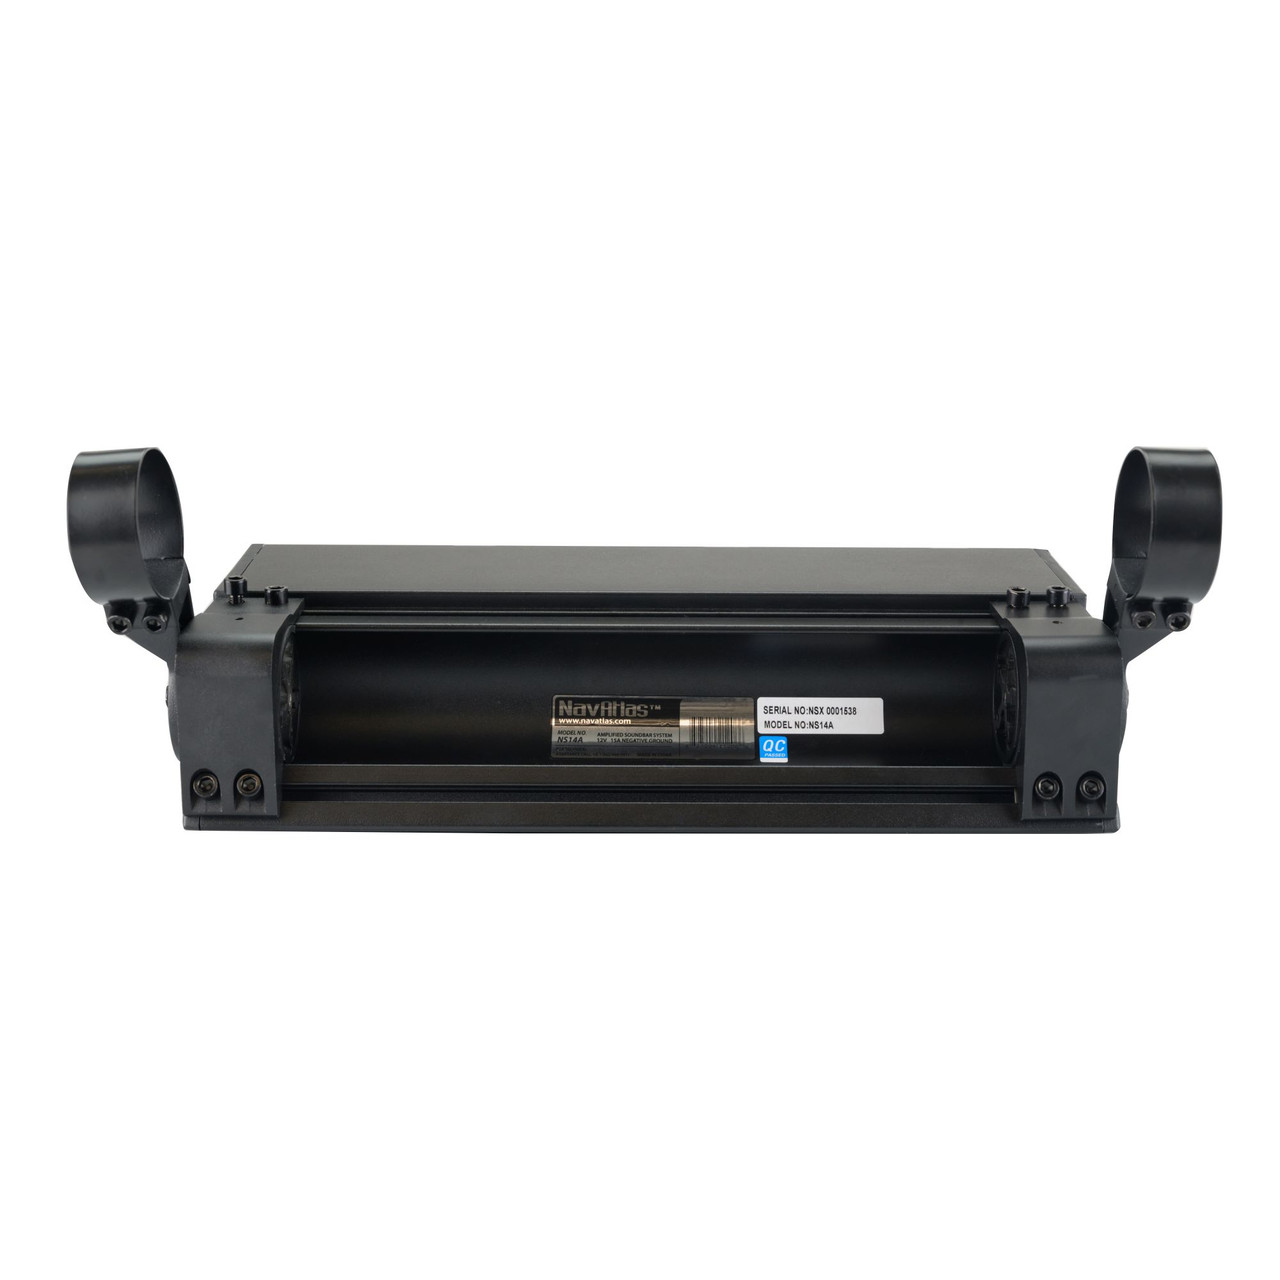 NavAtlas NS35A 35 12 Speaker Powersports Soundbar with Built-in 200 Watt Class-D Amplifier